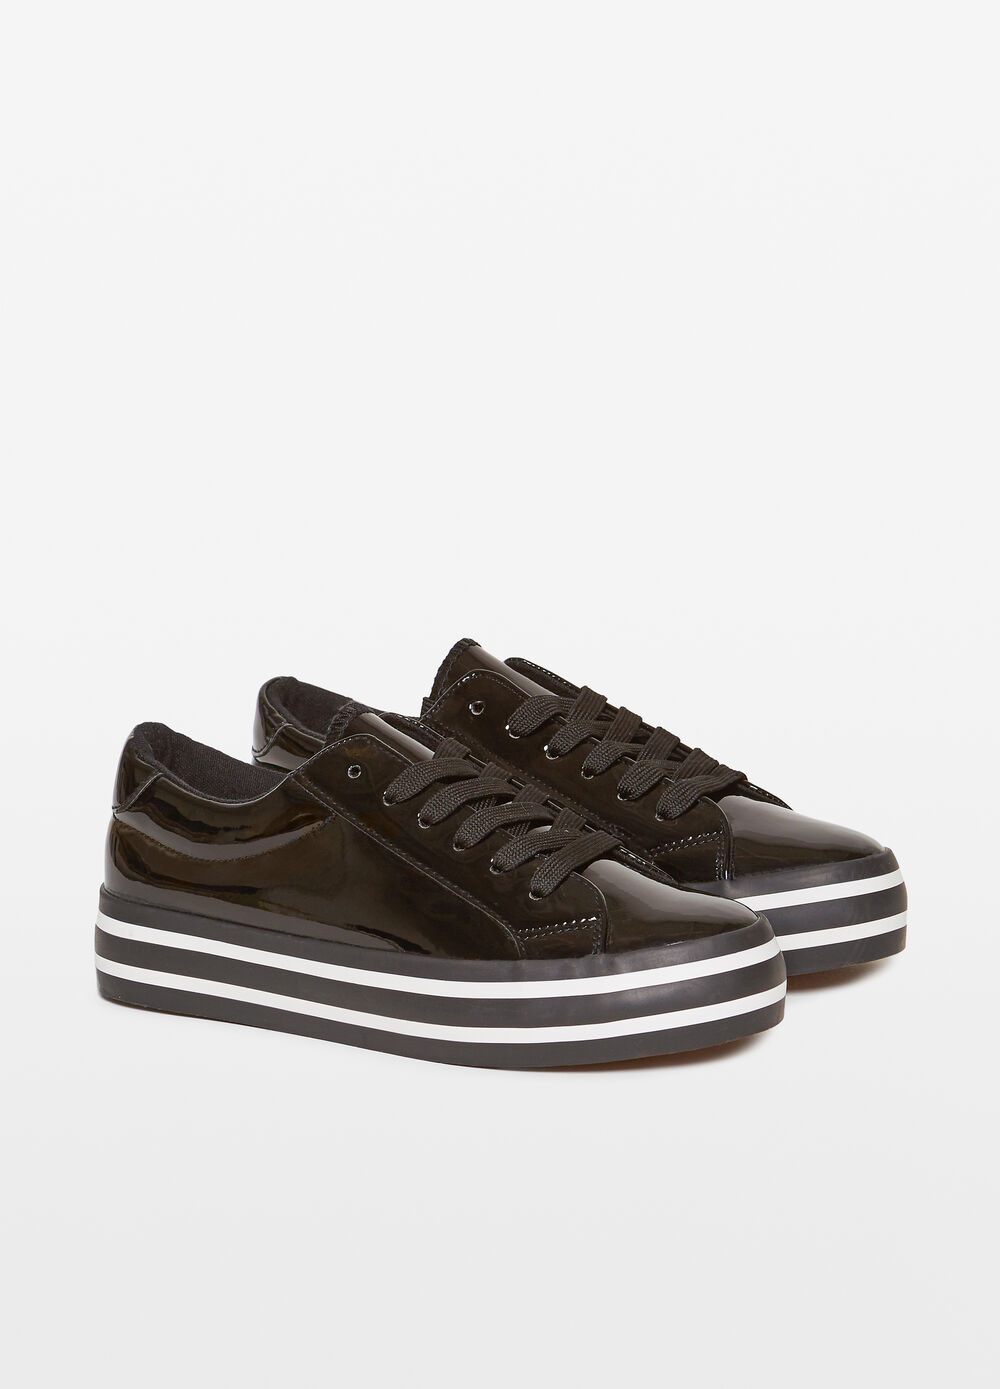 Shiny sneakers with platform sole